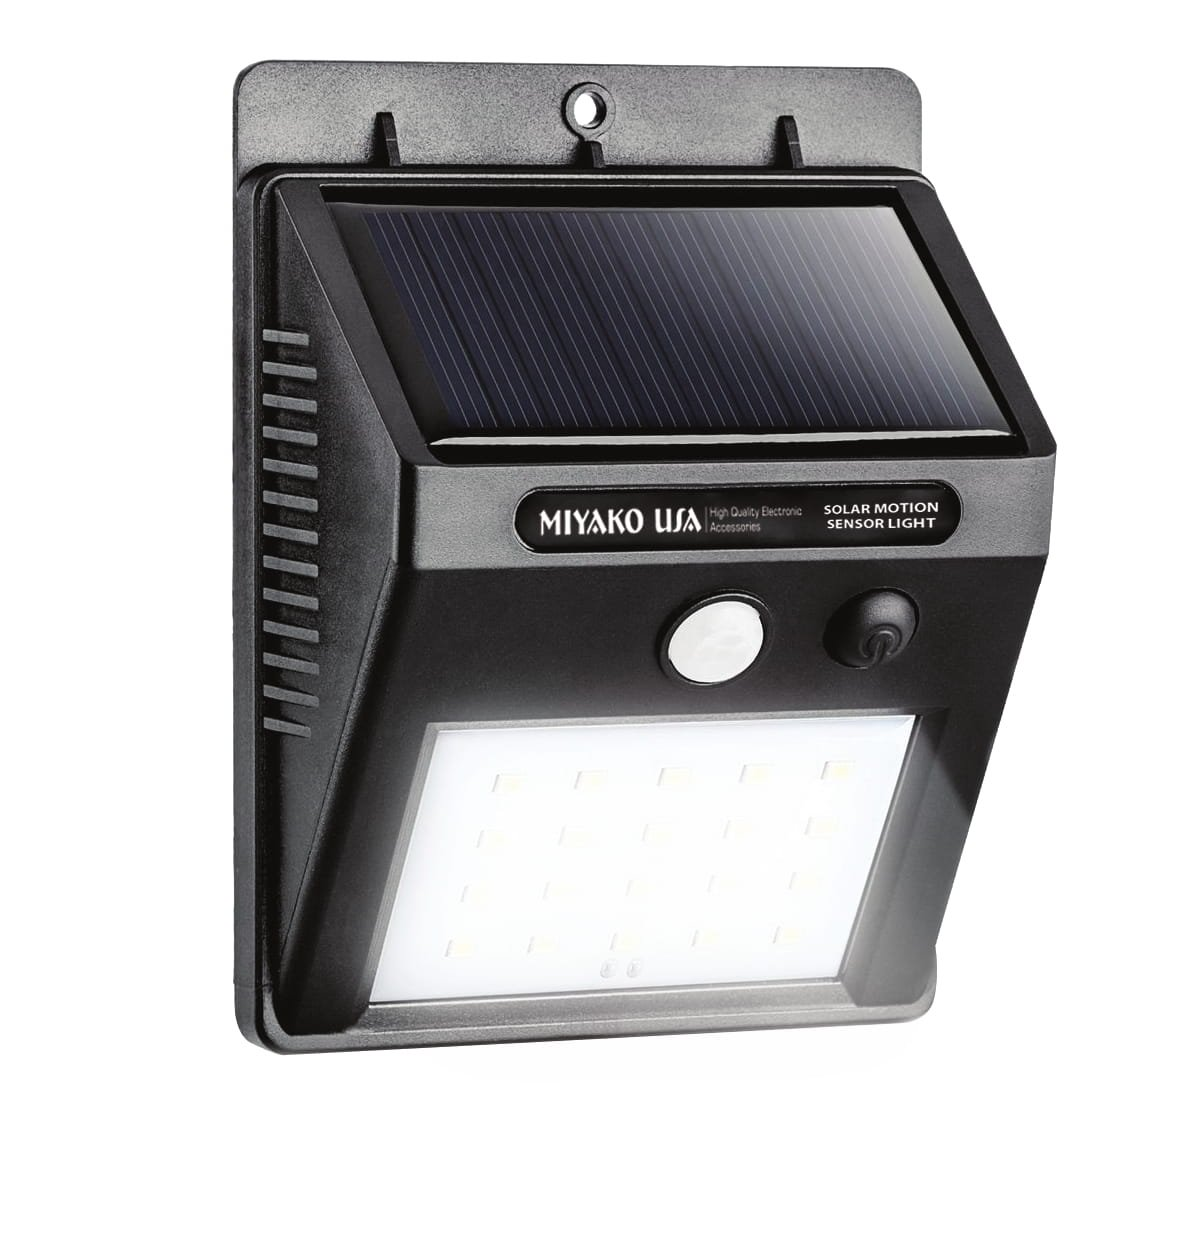 MIYAKO USA Sun Powered Motion Sensor Light - 20 LED HETP Bright Outdoor Security Lights, Wireless and Waterproof (SEL-009)